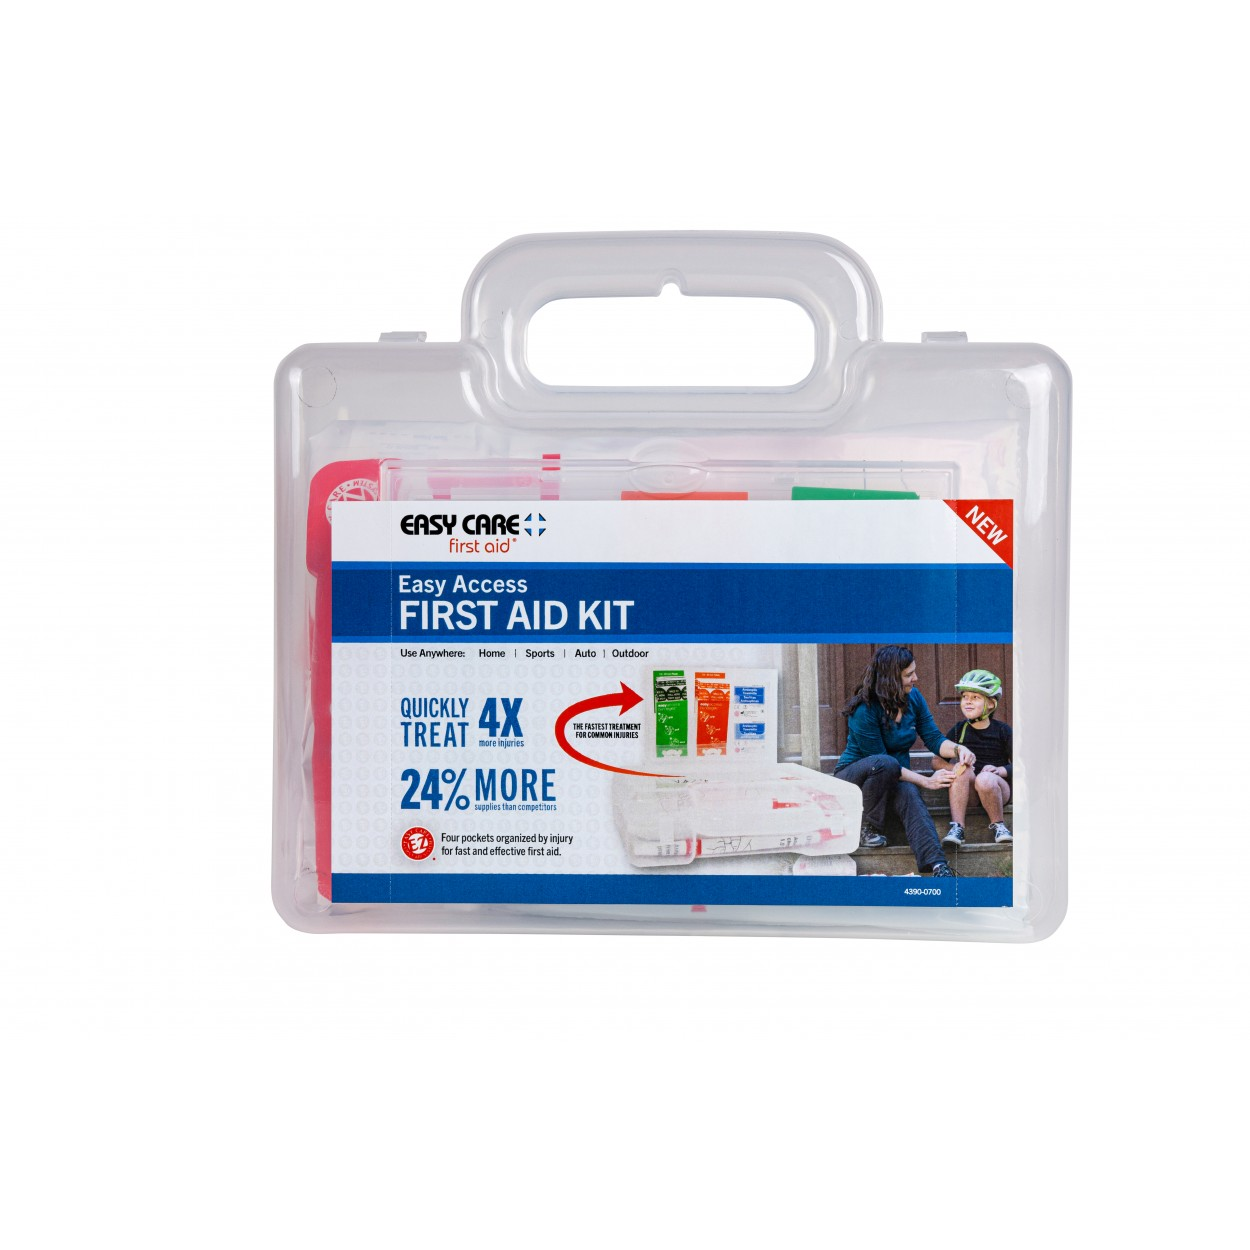 Easy Care First Aid™ Easy Access First Aid Kit - Easy Care